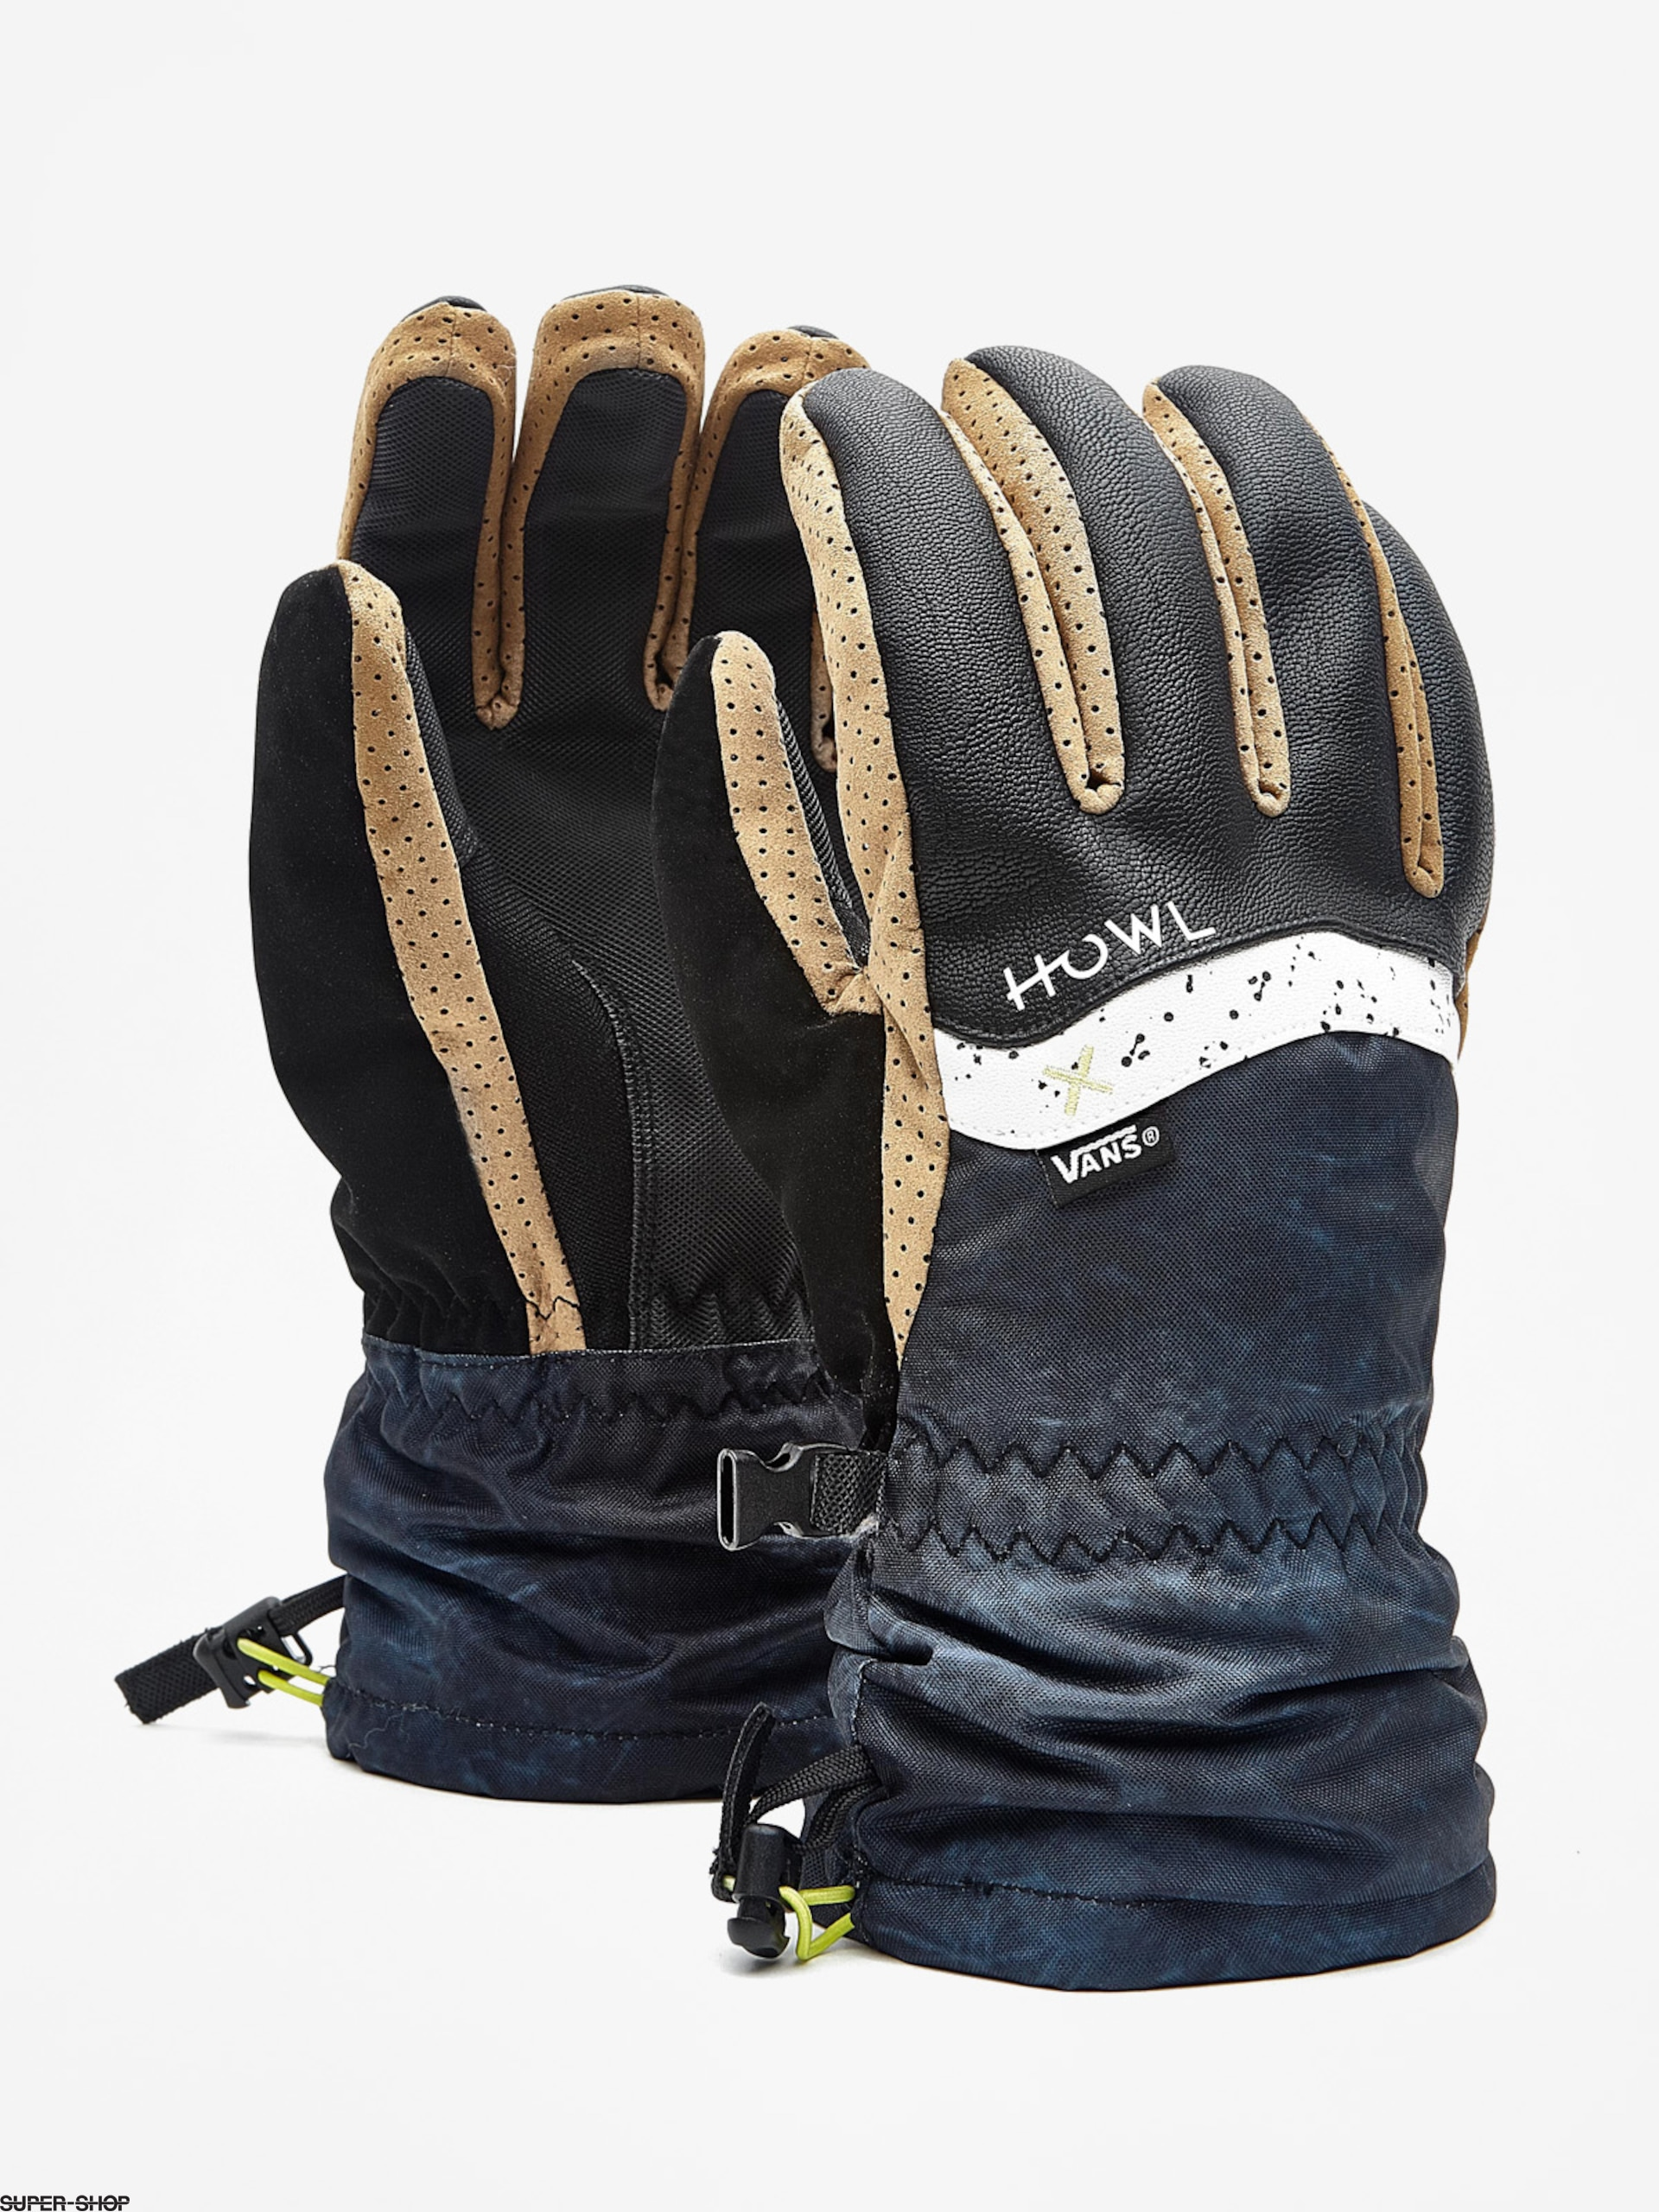 Howl  x Vans Gloves (black)